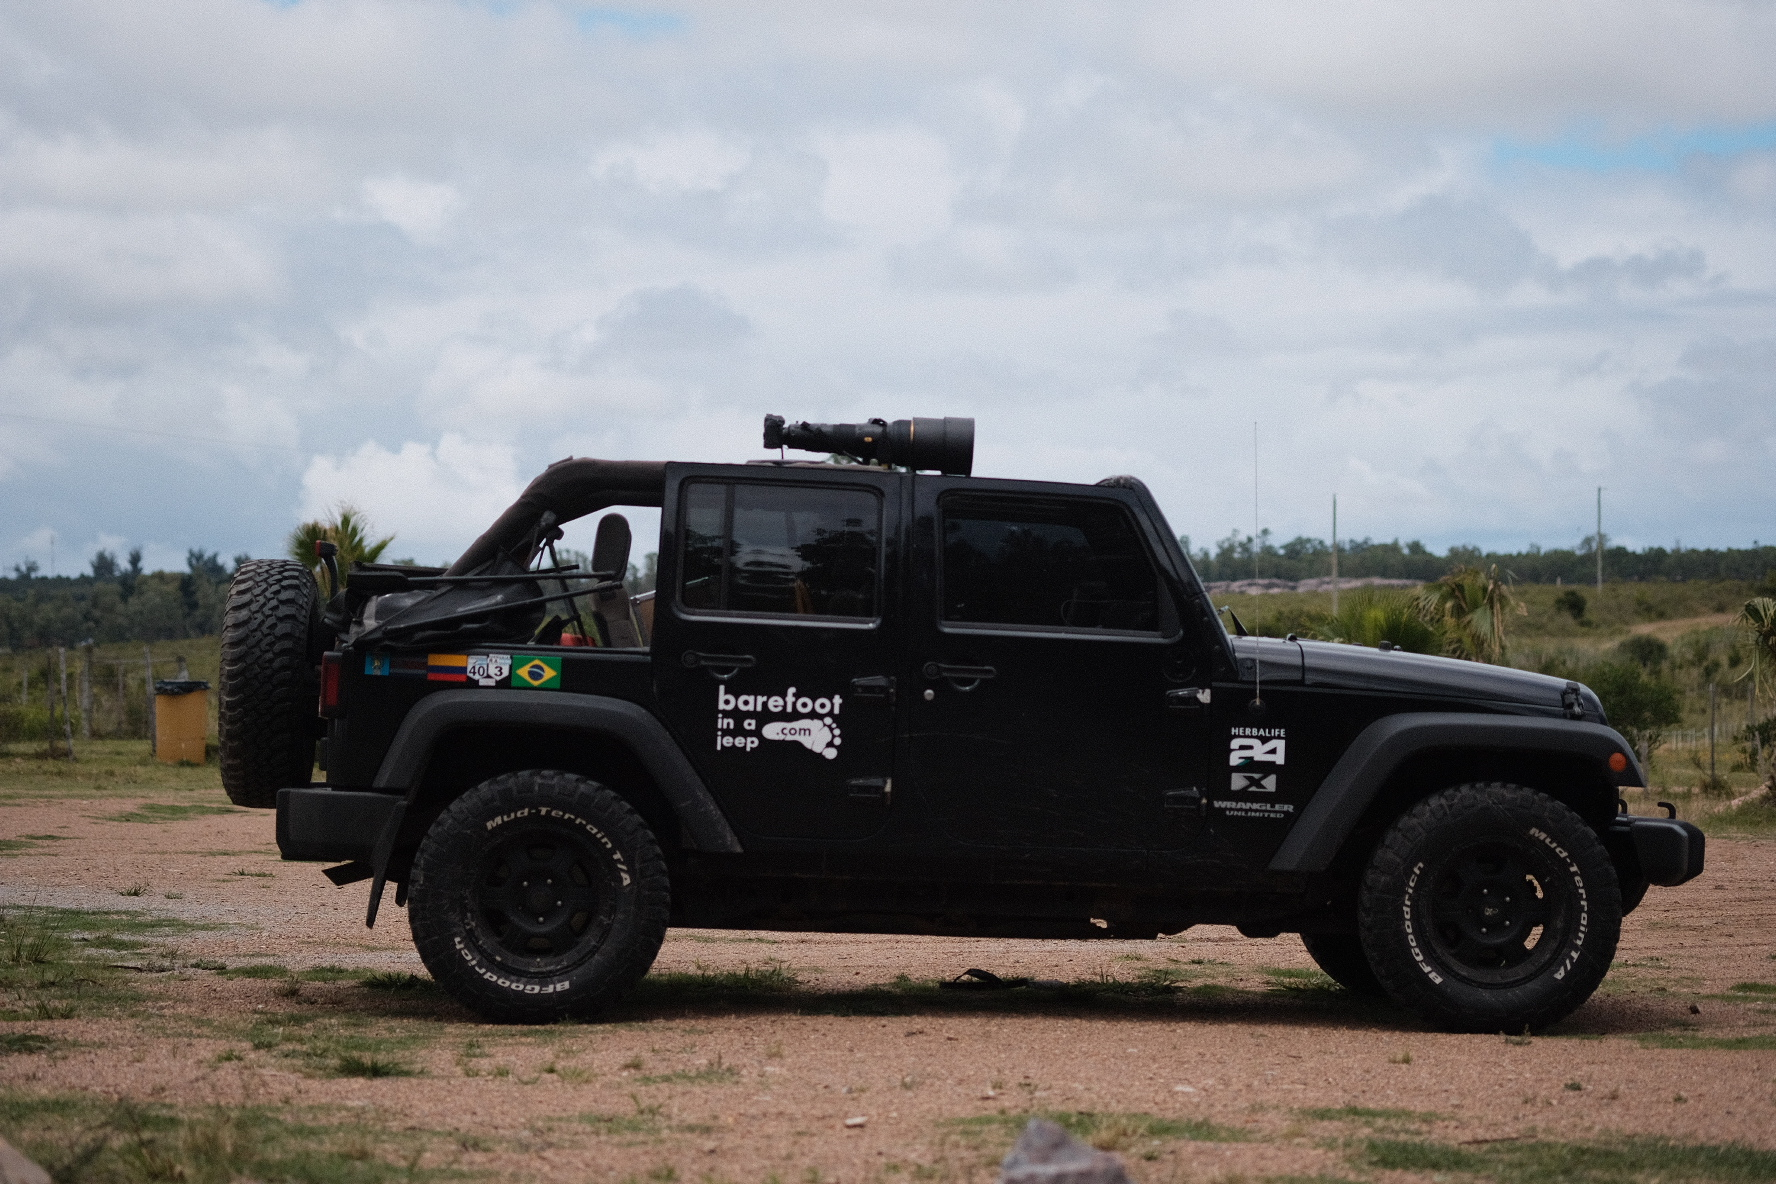 I mounted a 600mm f/4 on my Jeep. Why? Cause I could.